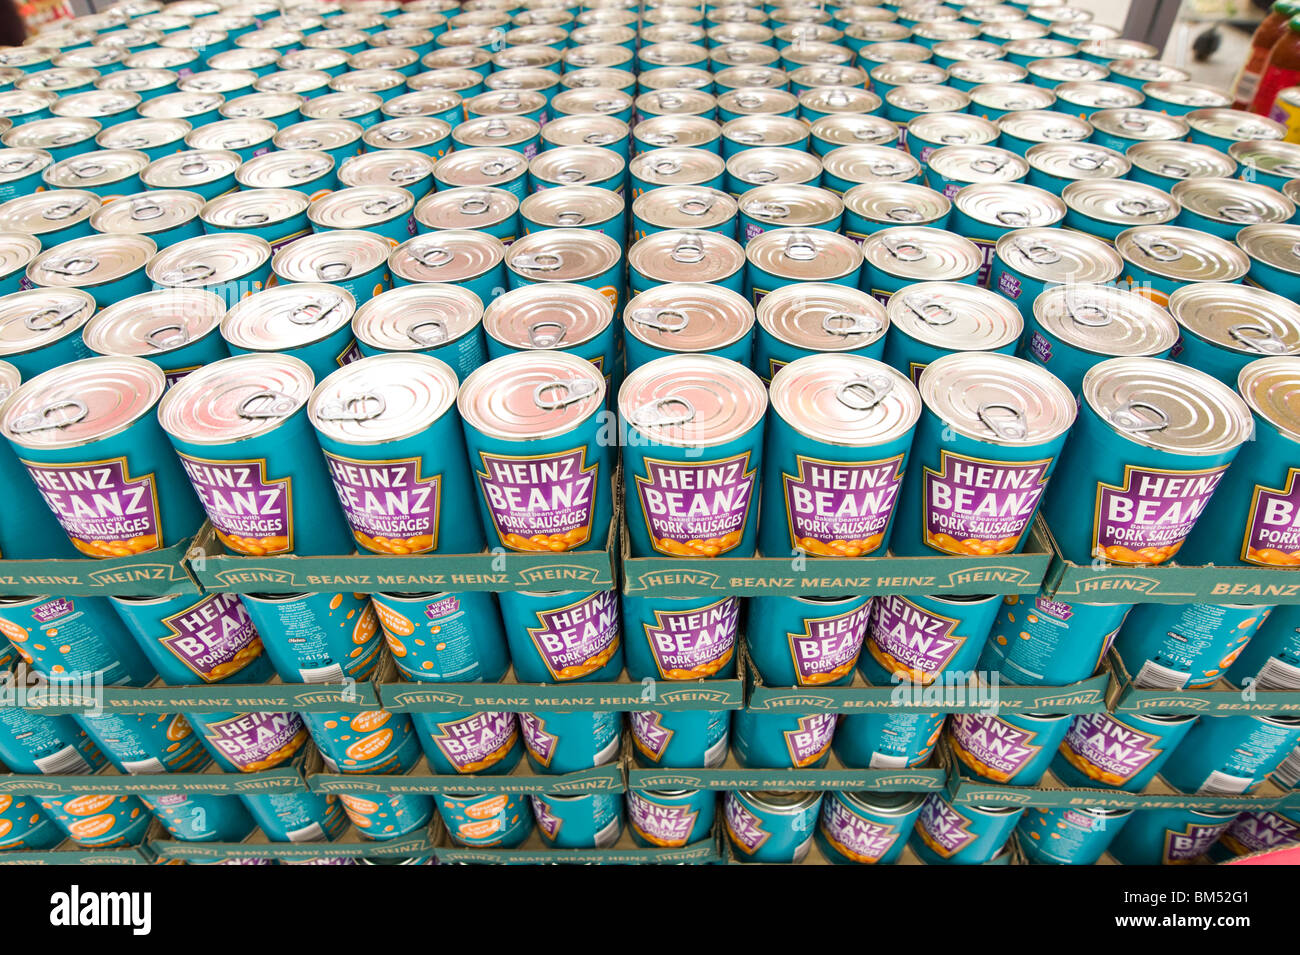 Rows of tins of Heinz baked beans, England, UK - Stock Image